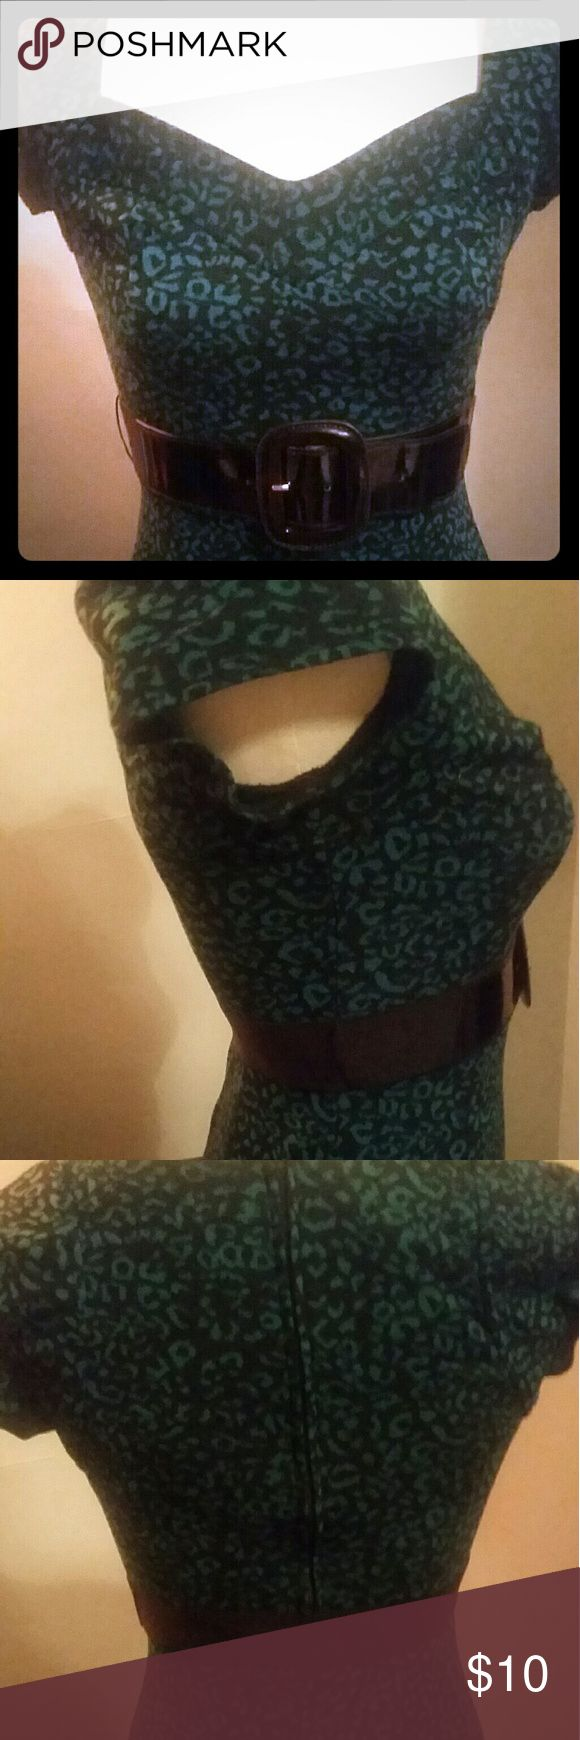 A. Byer animal print dress Black and green leopard print dress hugs curves. Sweetheart neckline, cap sleeves, hits just below knee. Great for a Saint Patrick's DAY pub crawl!  *belt not included. A. Beyer Dresses Midi